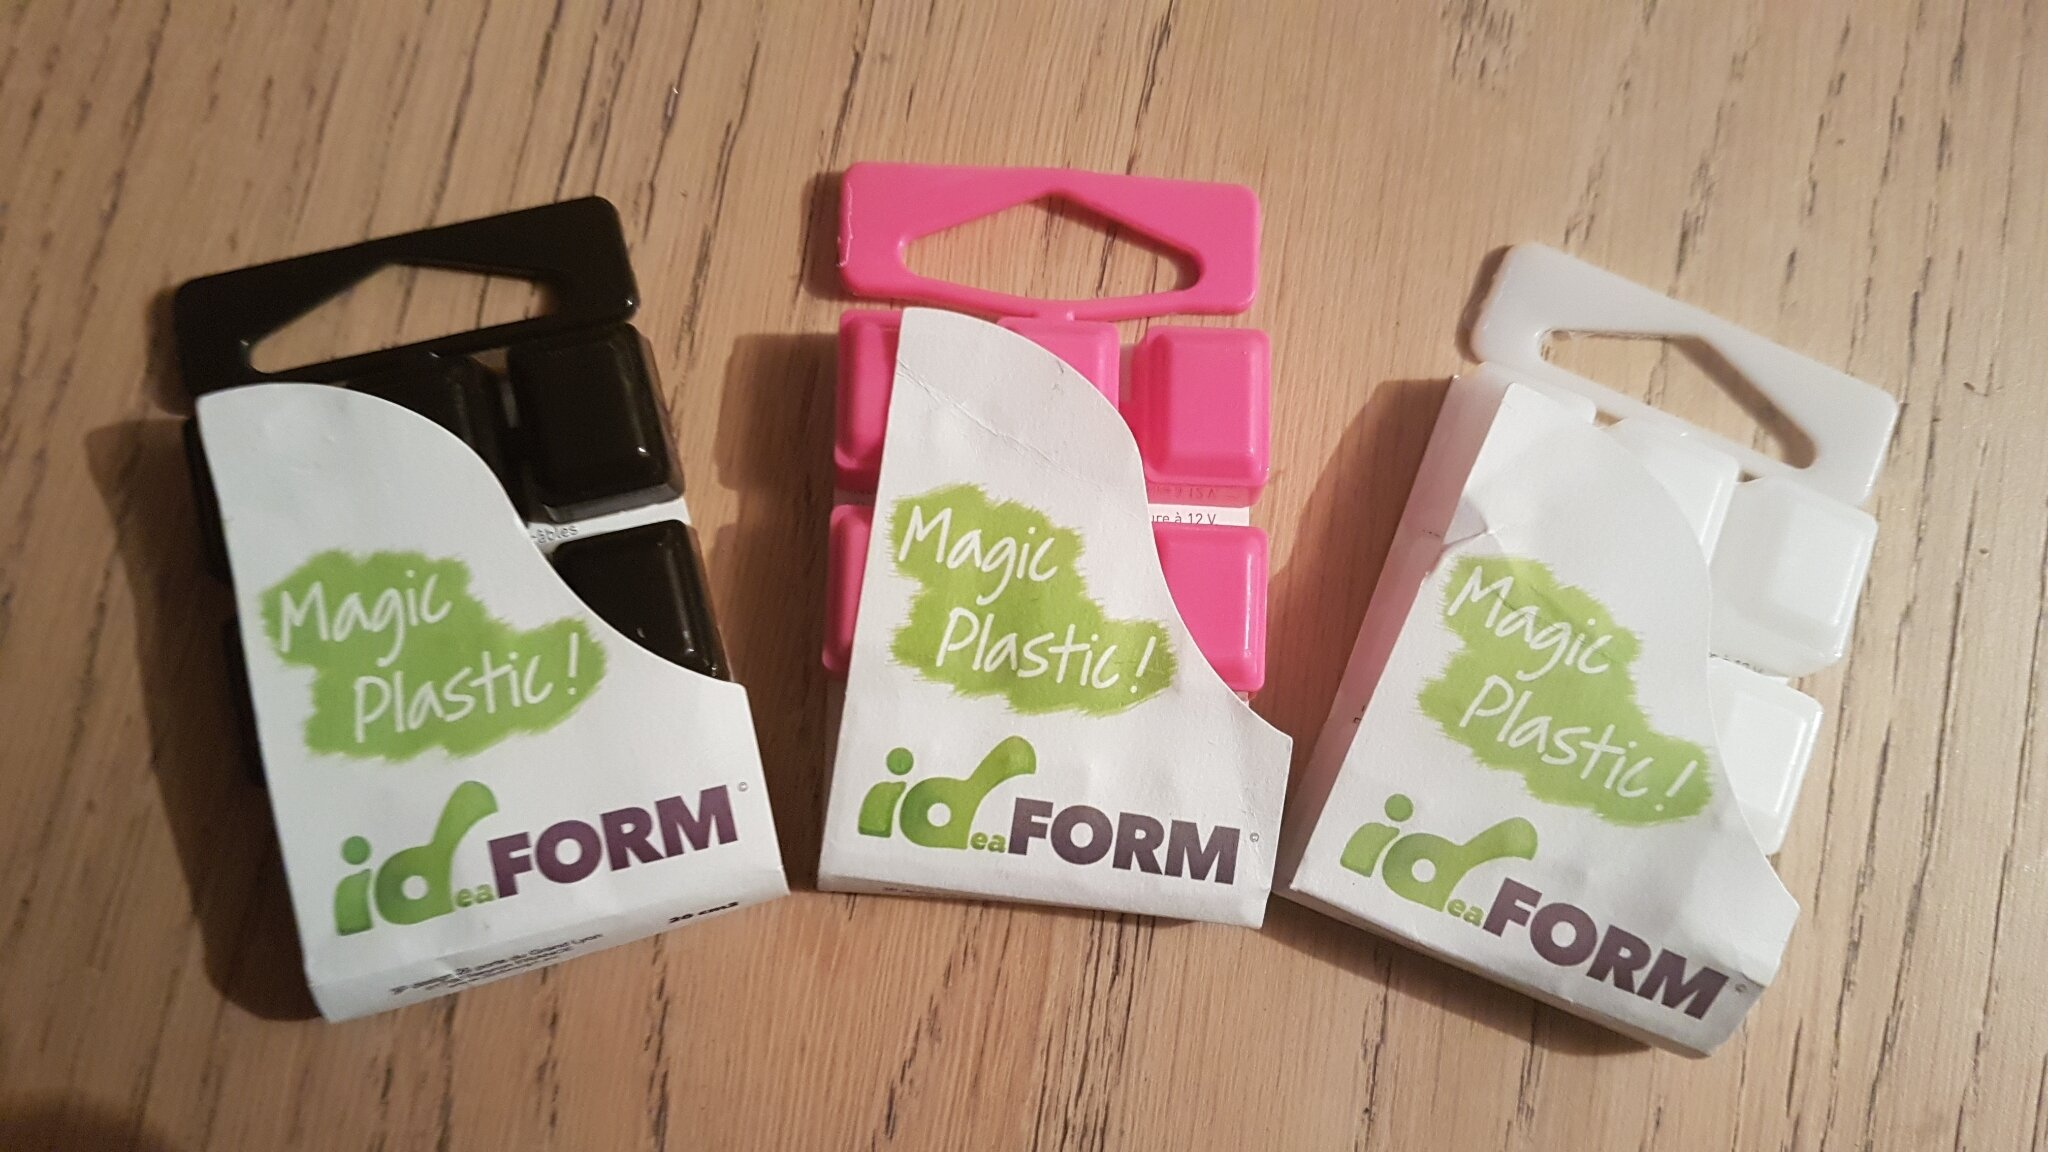 Test du plastic magic ID Form : très astucieux !